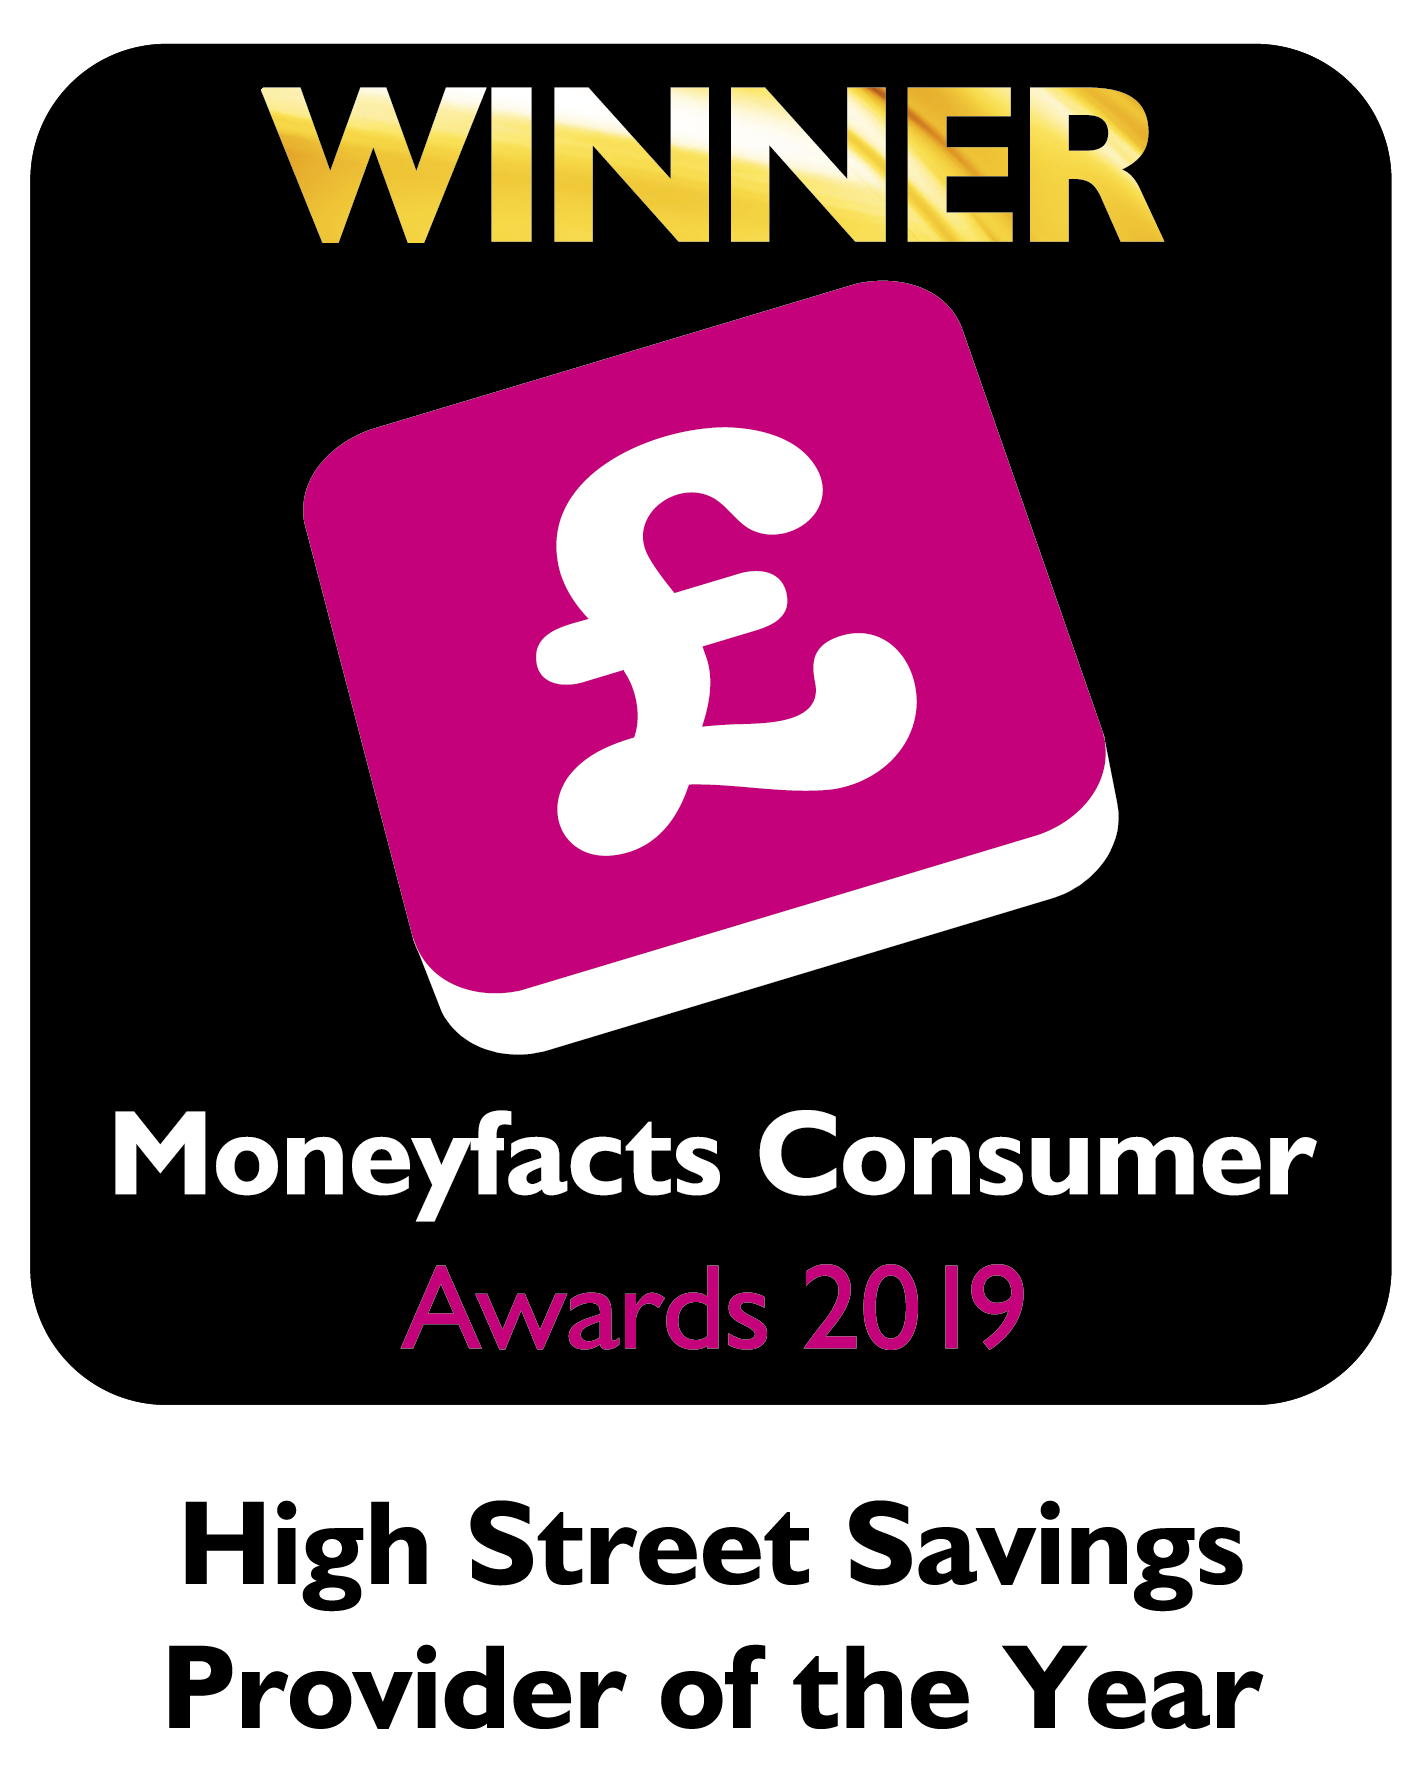 Moneyfacts awards 2019 - Best High Street Savings Provider of the Year